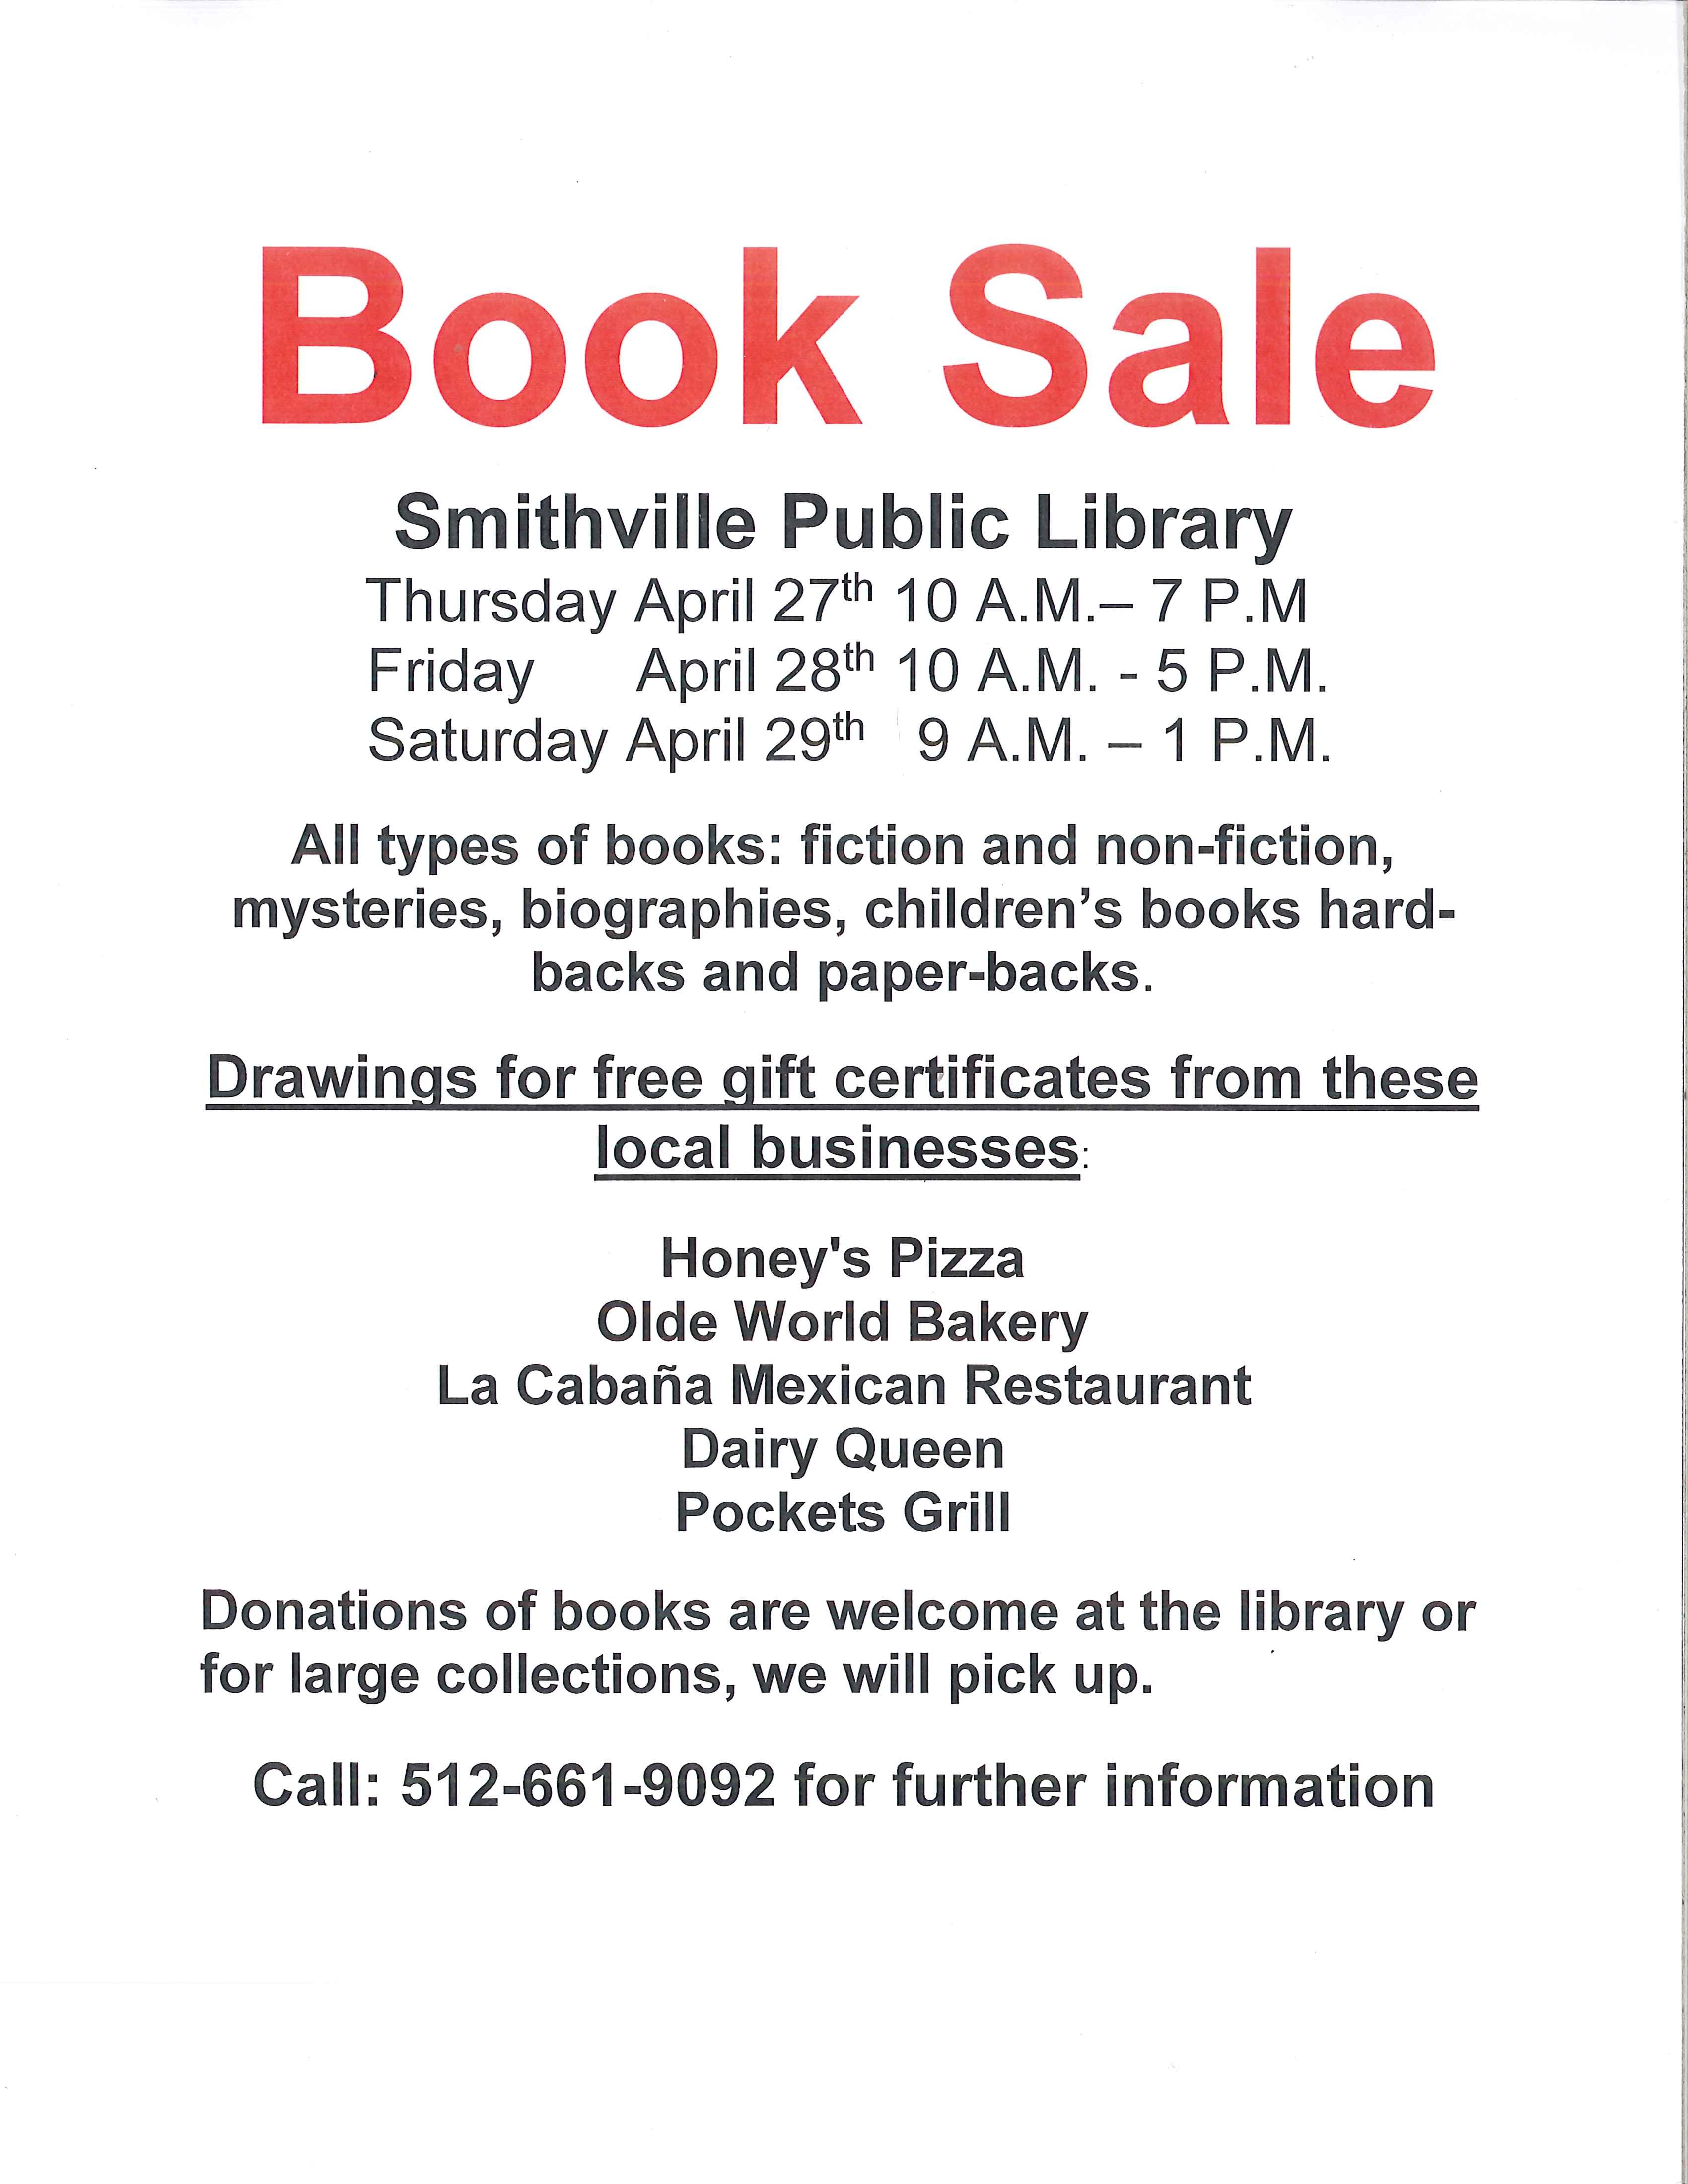 Book sale flier_201704171117_0001.jpg